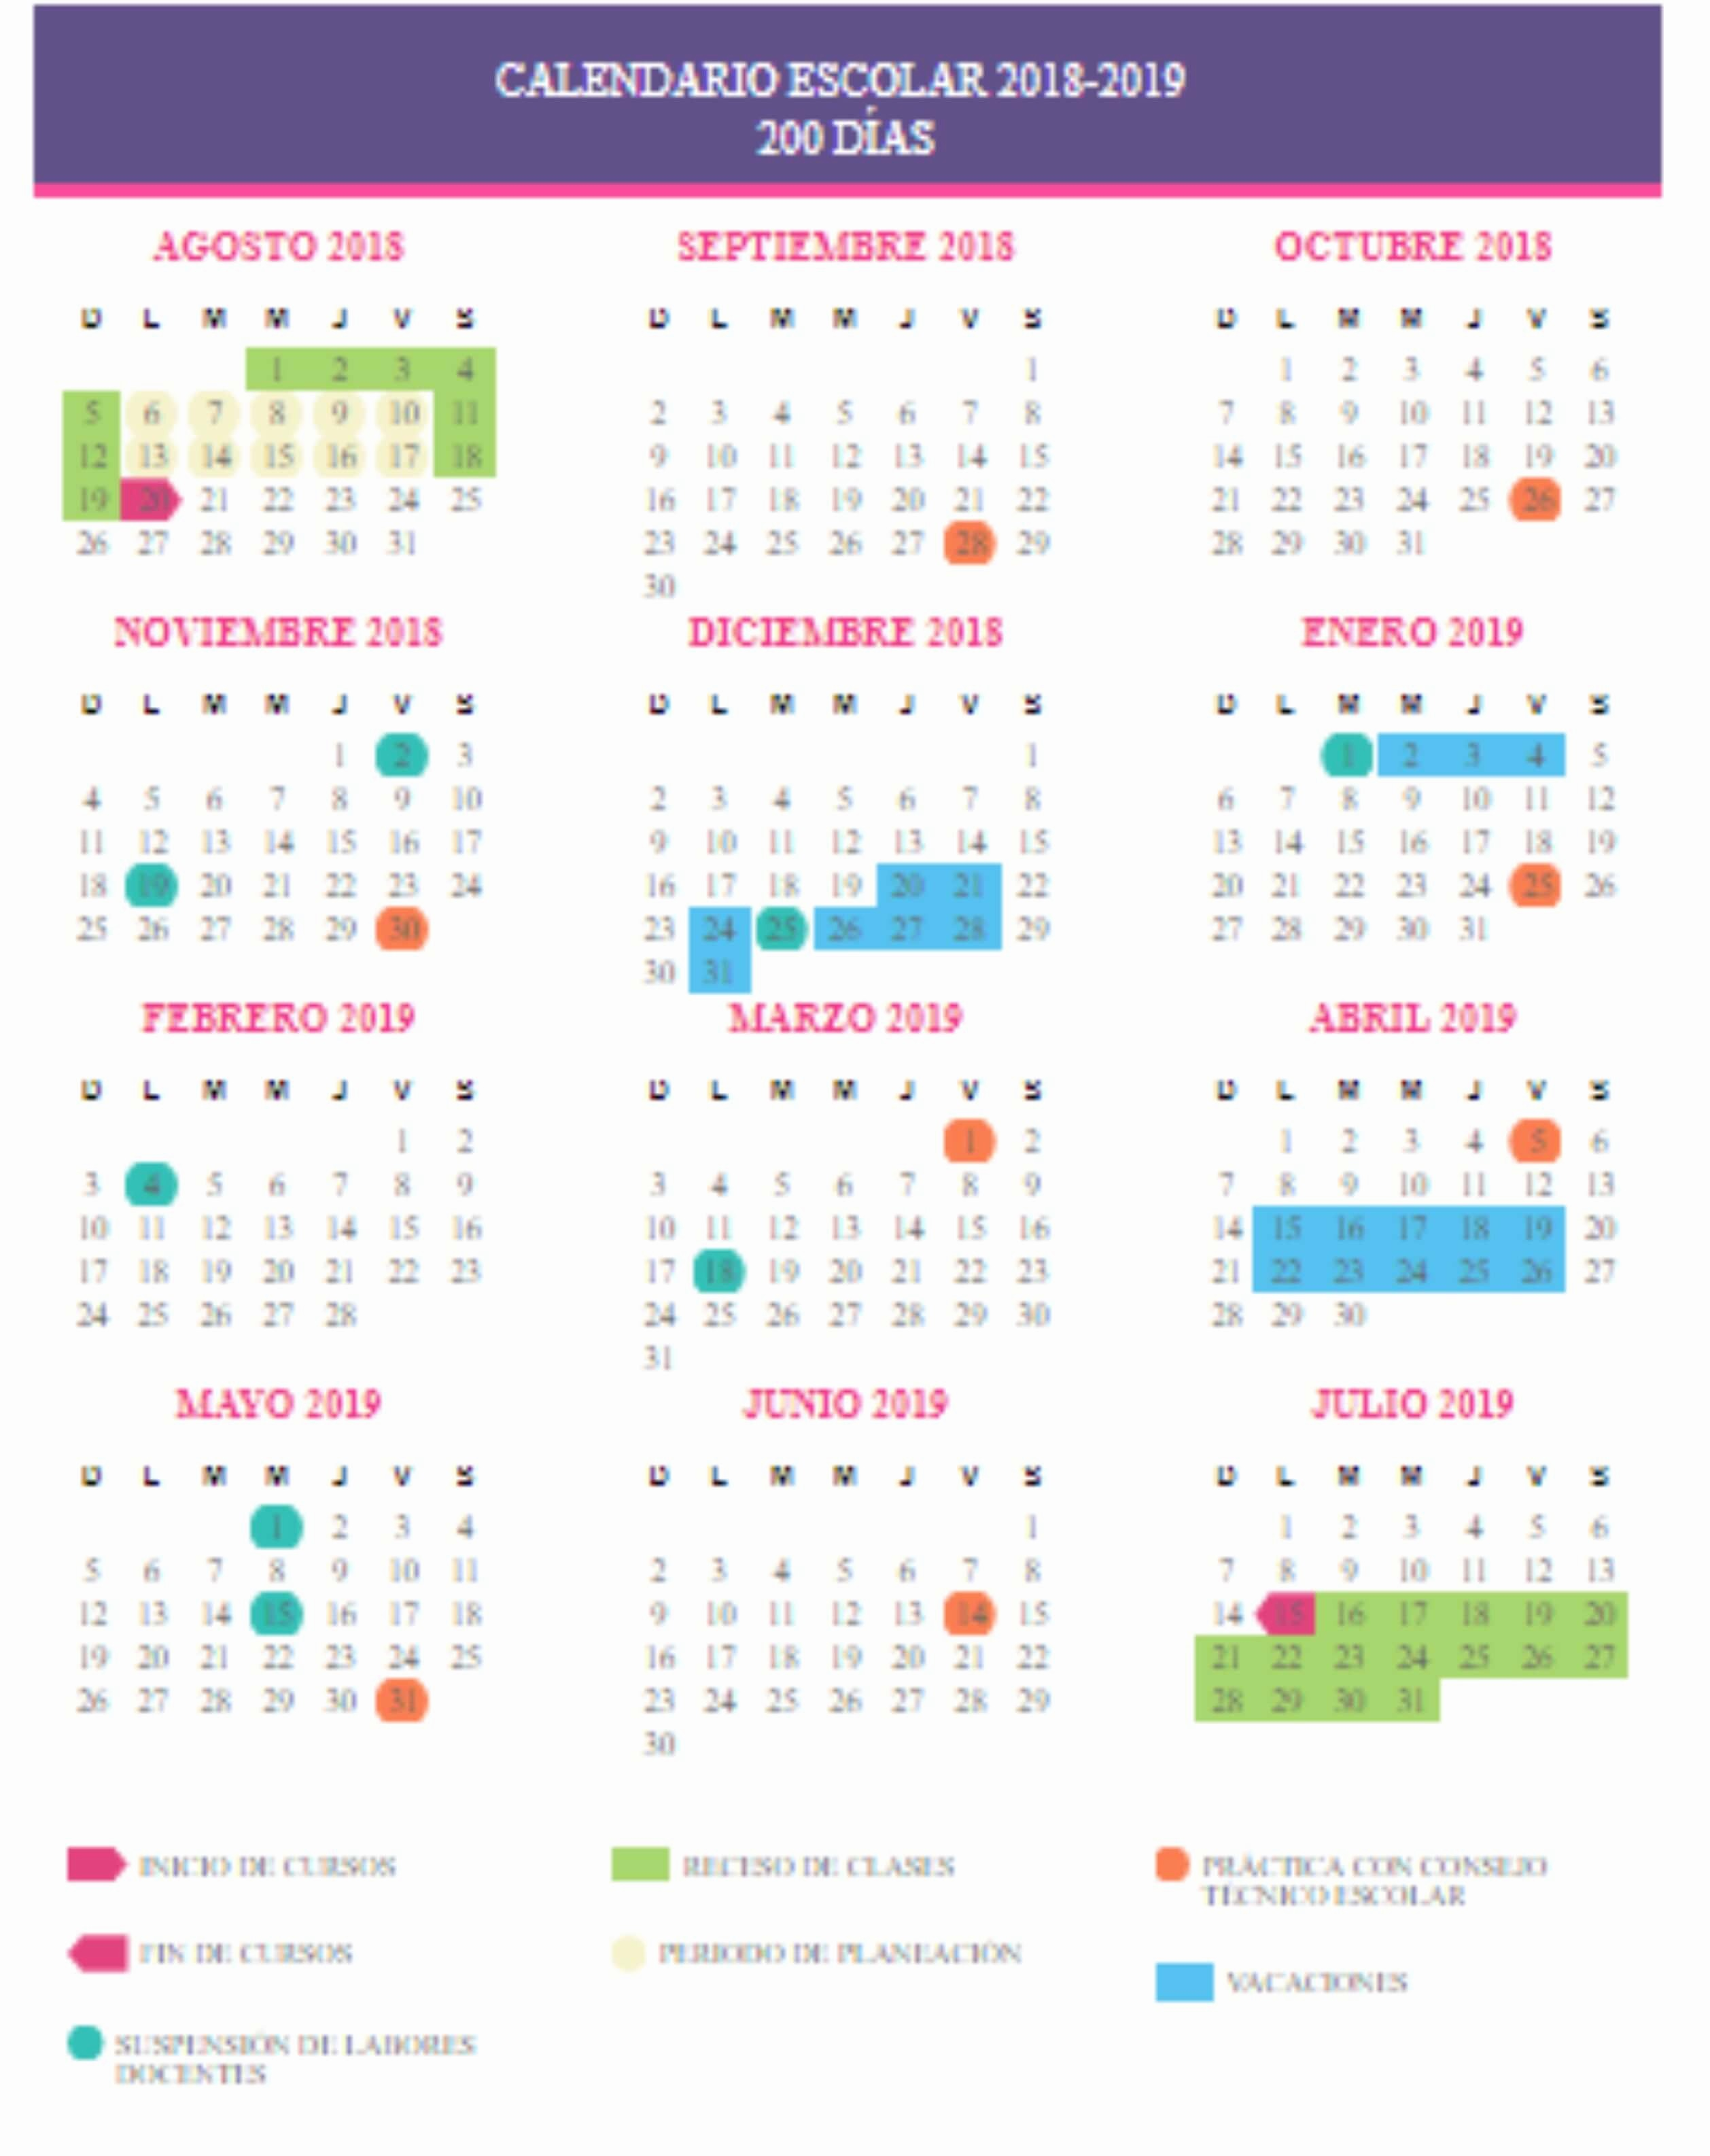 Calendario Meccanocar 2019 Sep Da A Conocer Calendario Escolar Del Ciclo 2018 2019